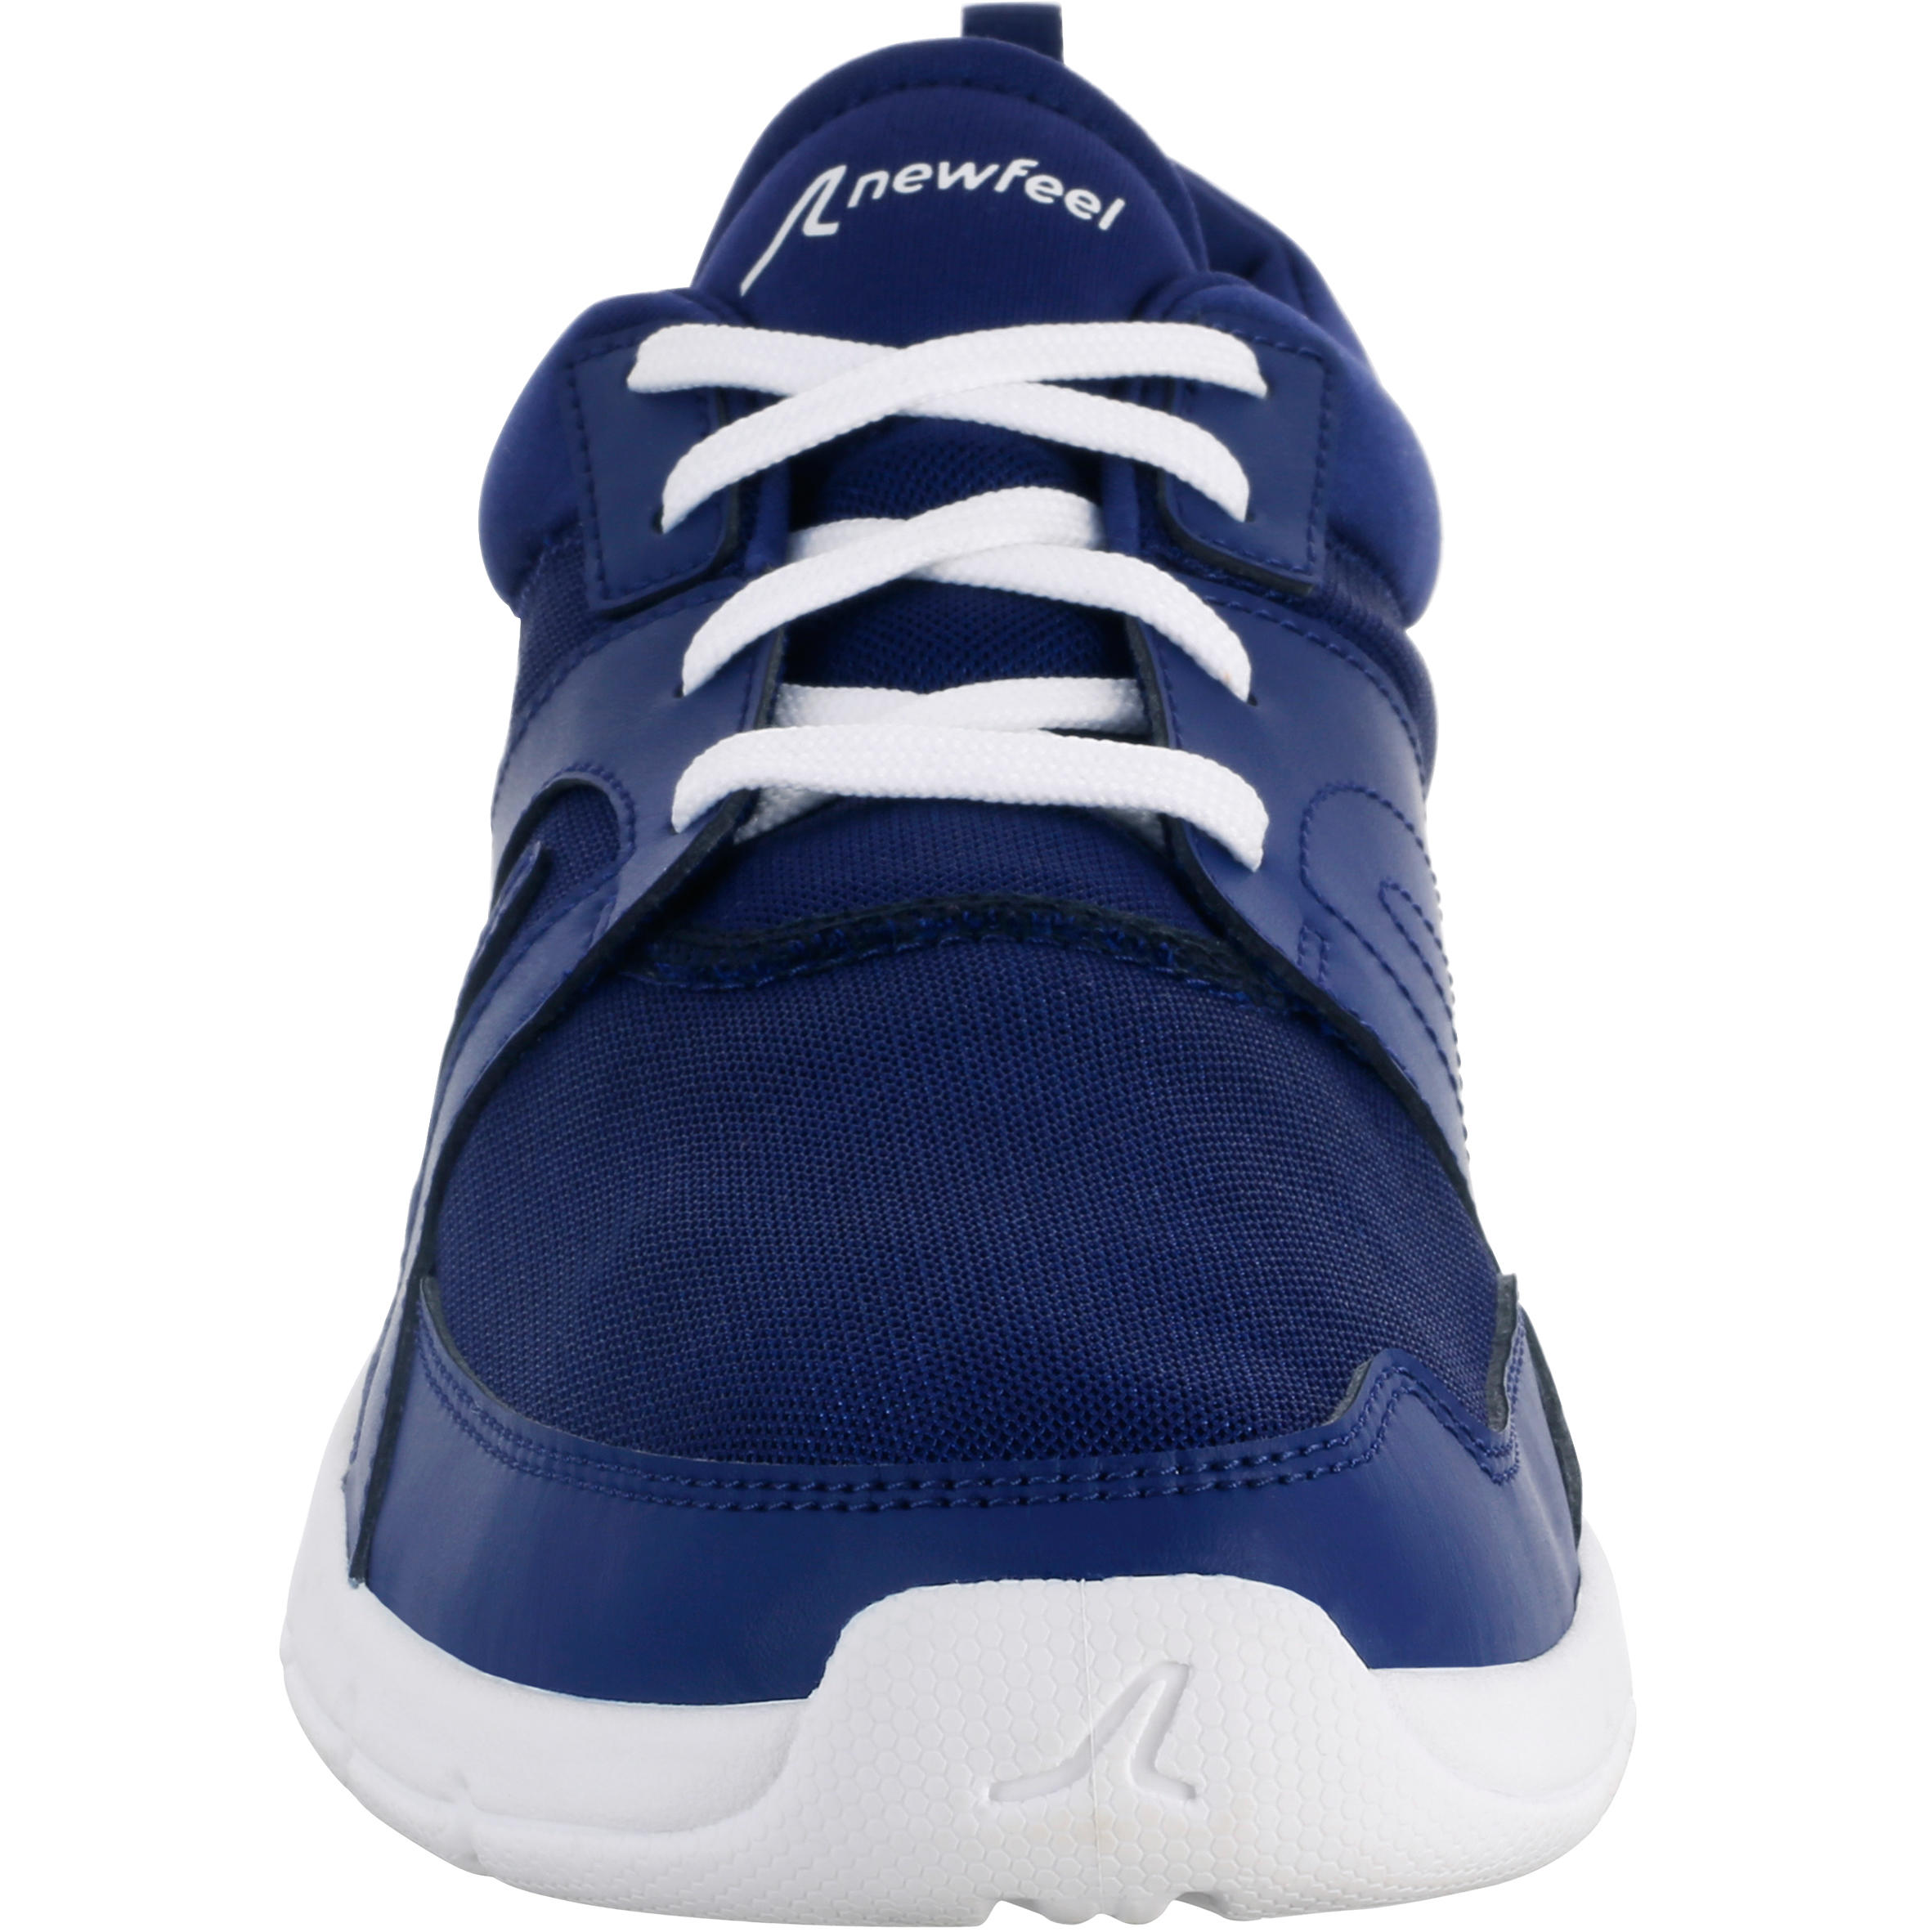 Walking shoes for men soft 100 mesh - Dark blue